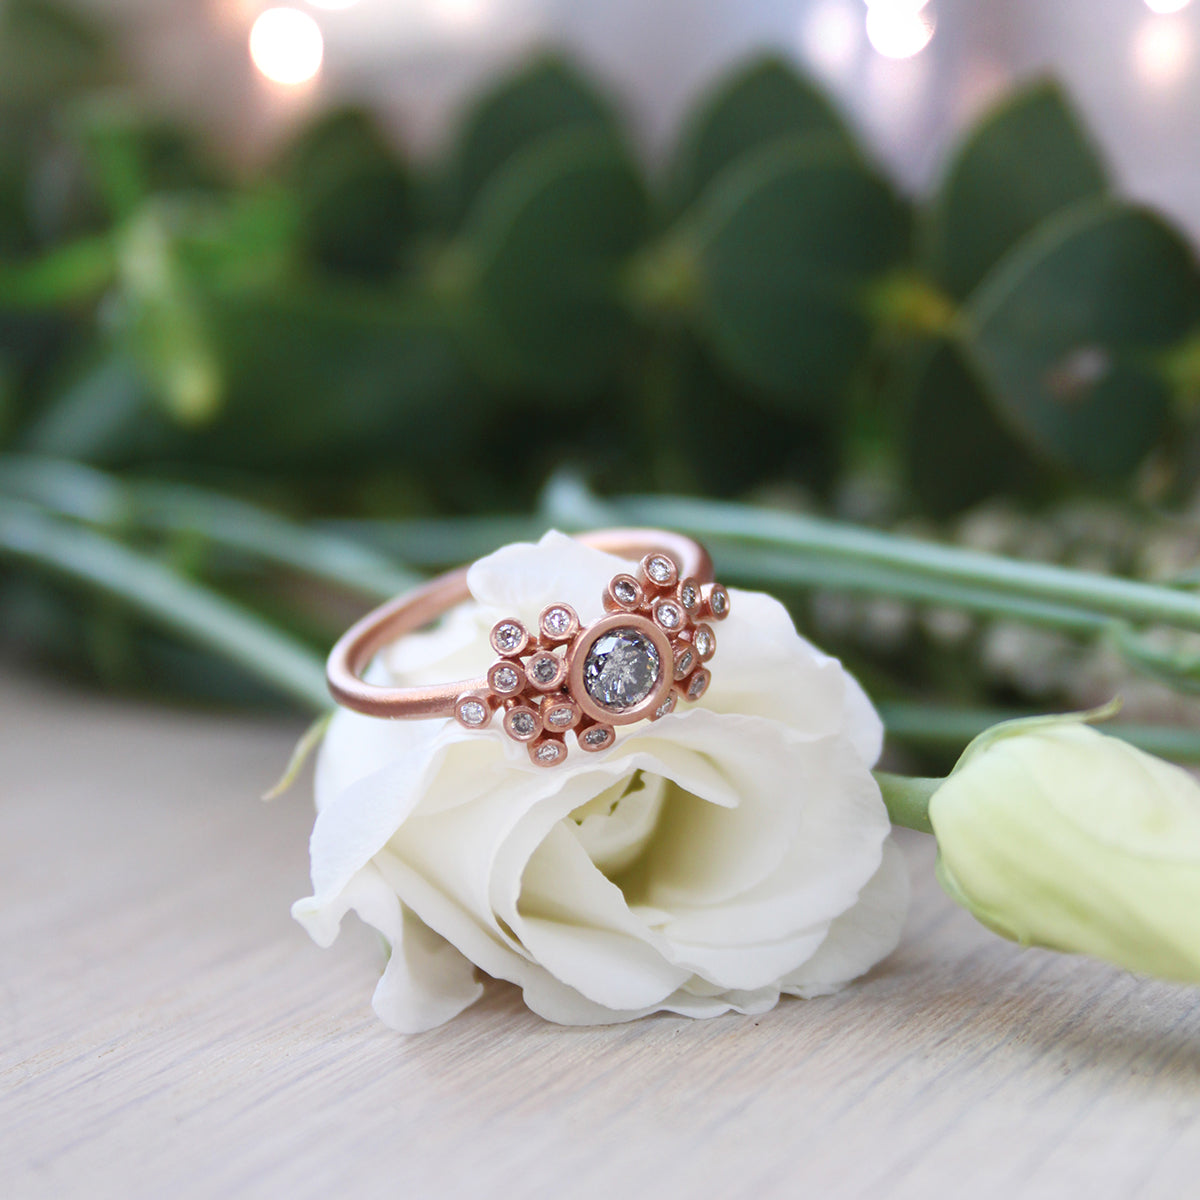 50pt Salt and Pepper Diamond & 9ct Red Gold Cluster Ring - James Newman Jewellery